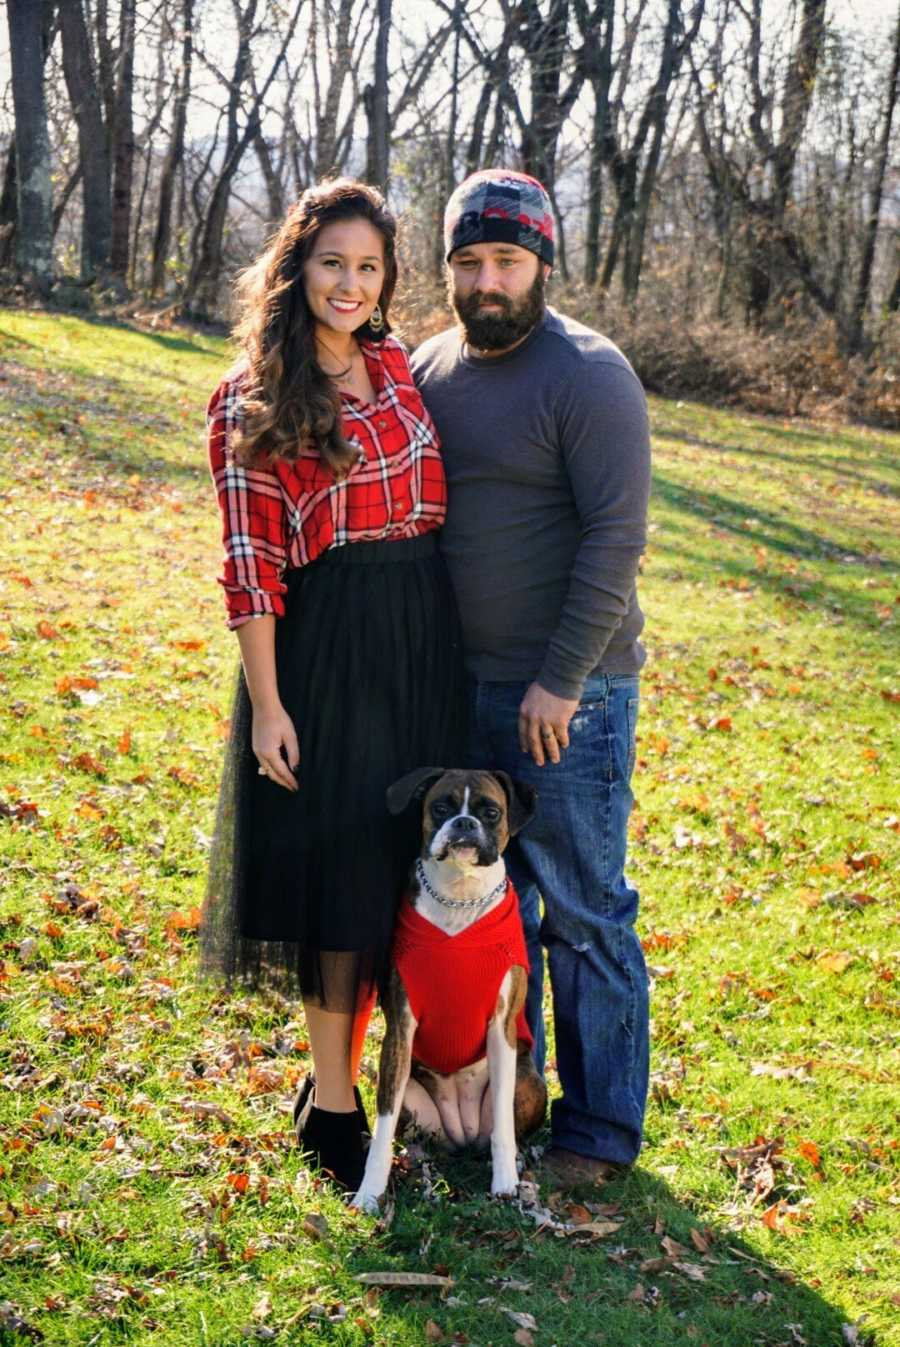 Husband and wife smiling and standing outside with Boxer dog